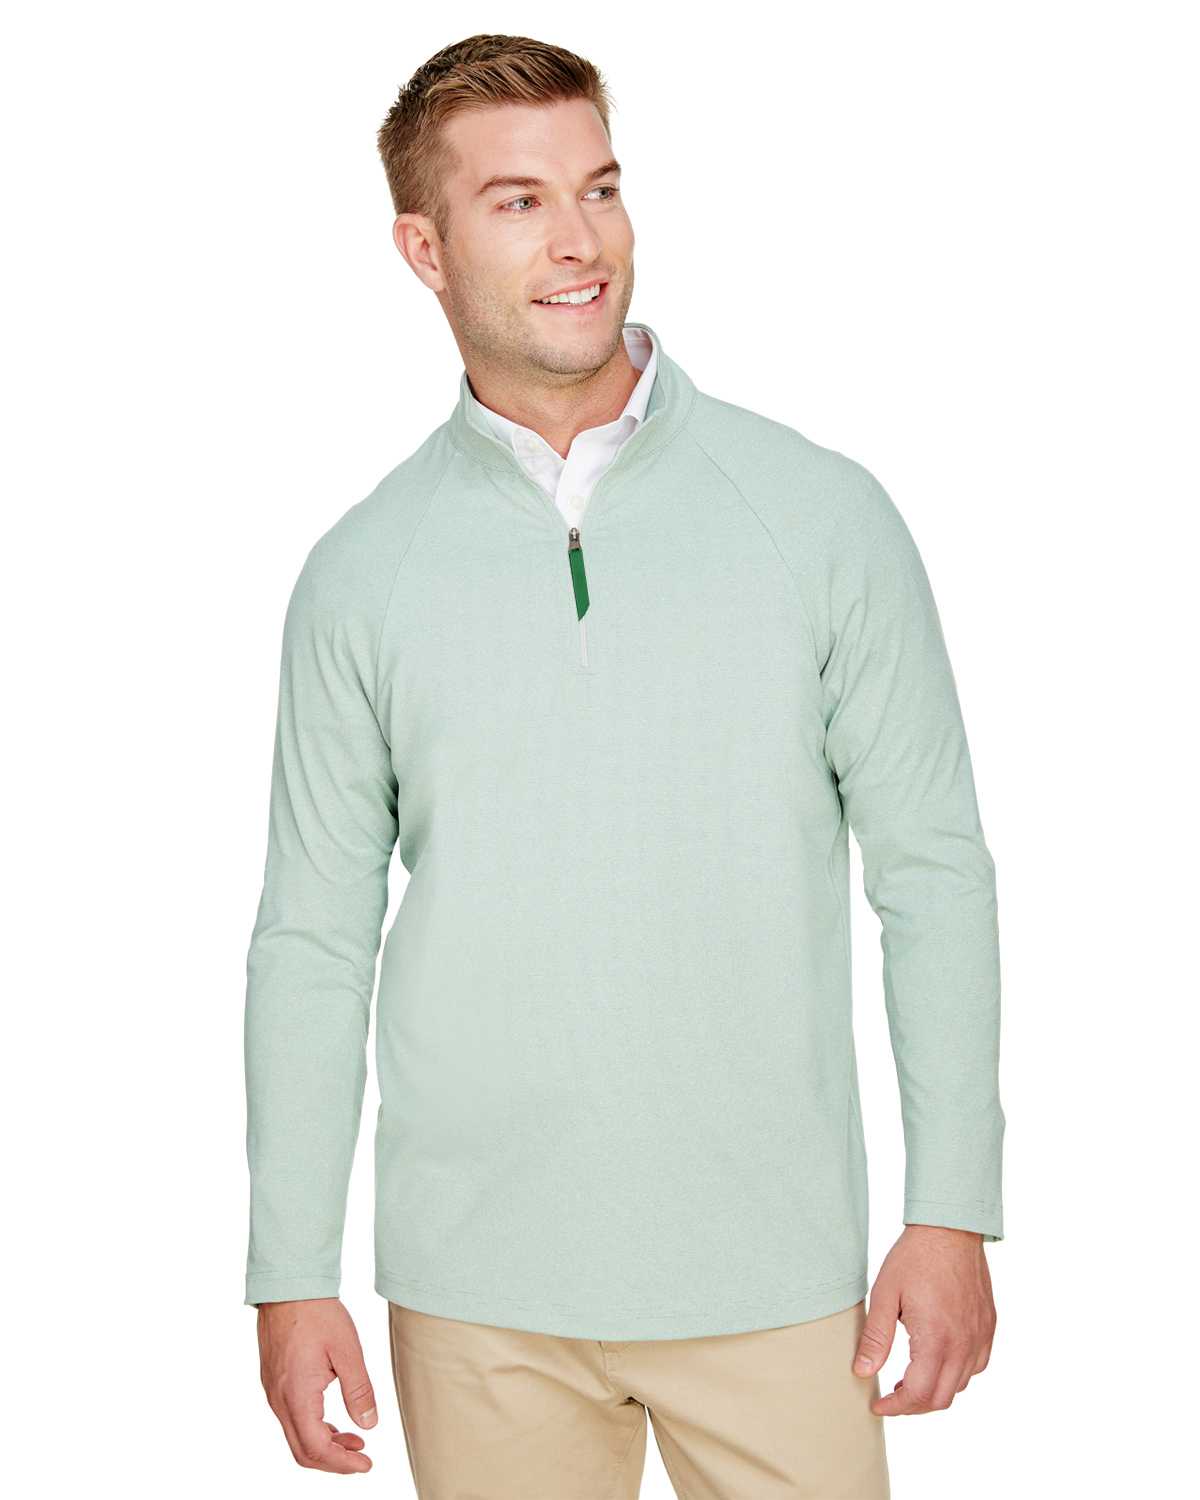 Devon & Jones DG480 - CrownLux Performance™ Men's Clubhouse Micro-Stripe Quarter-Zip